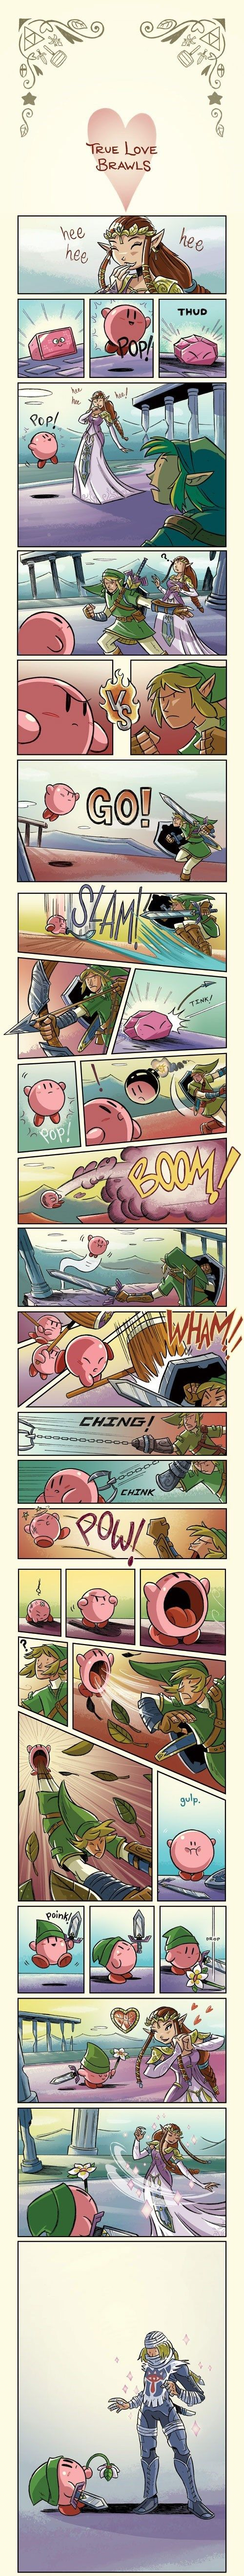 True Love Brawls. I'm pretty sure this was a gag about Kirby and Link fighting over Zelda, and then Zelda turning into Sheik, but this comic captures the fighting game aspect well, while still being visually stunning.